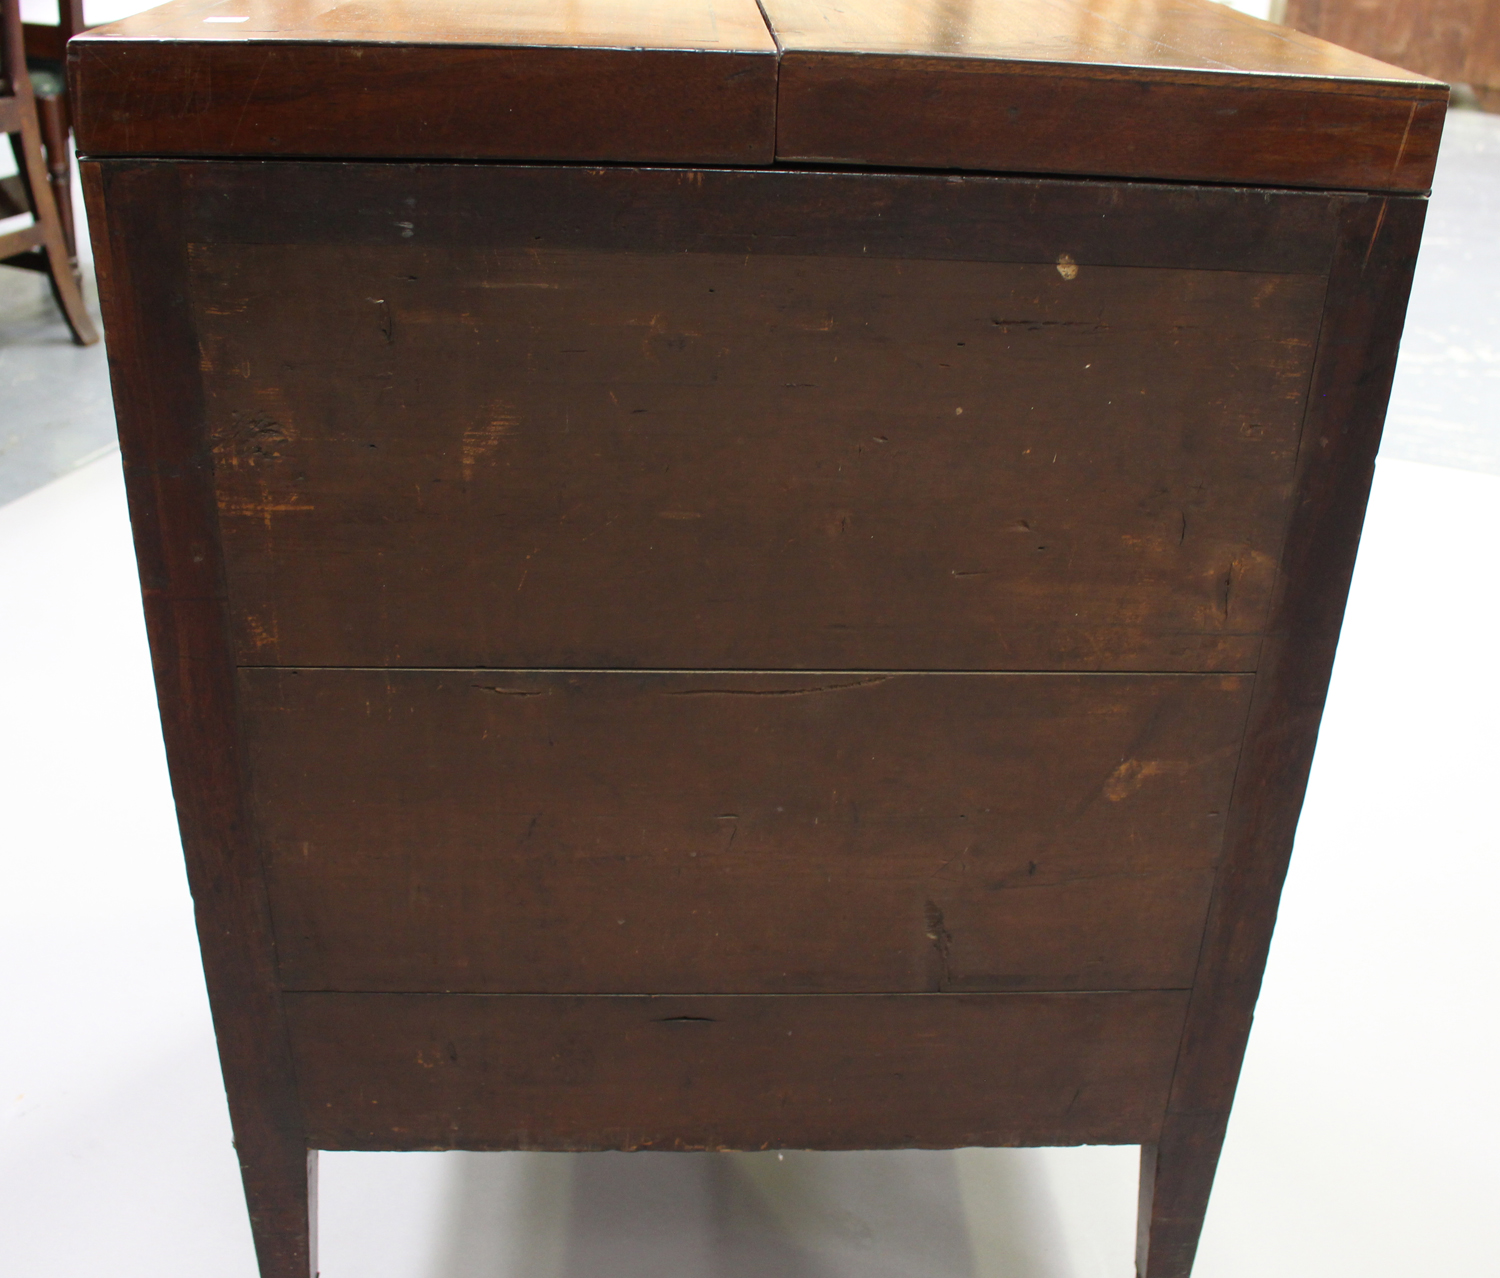 A George III mahogany dressing table, the double hinged top revealing a compartmentalized interior - Image 3 of 6